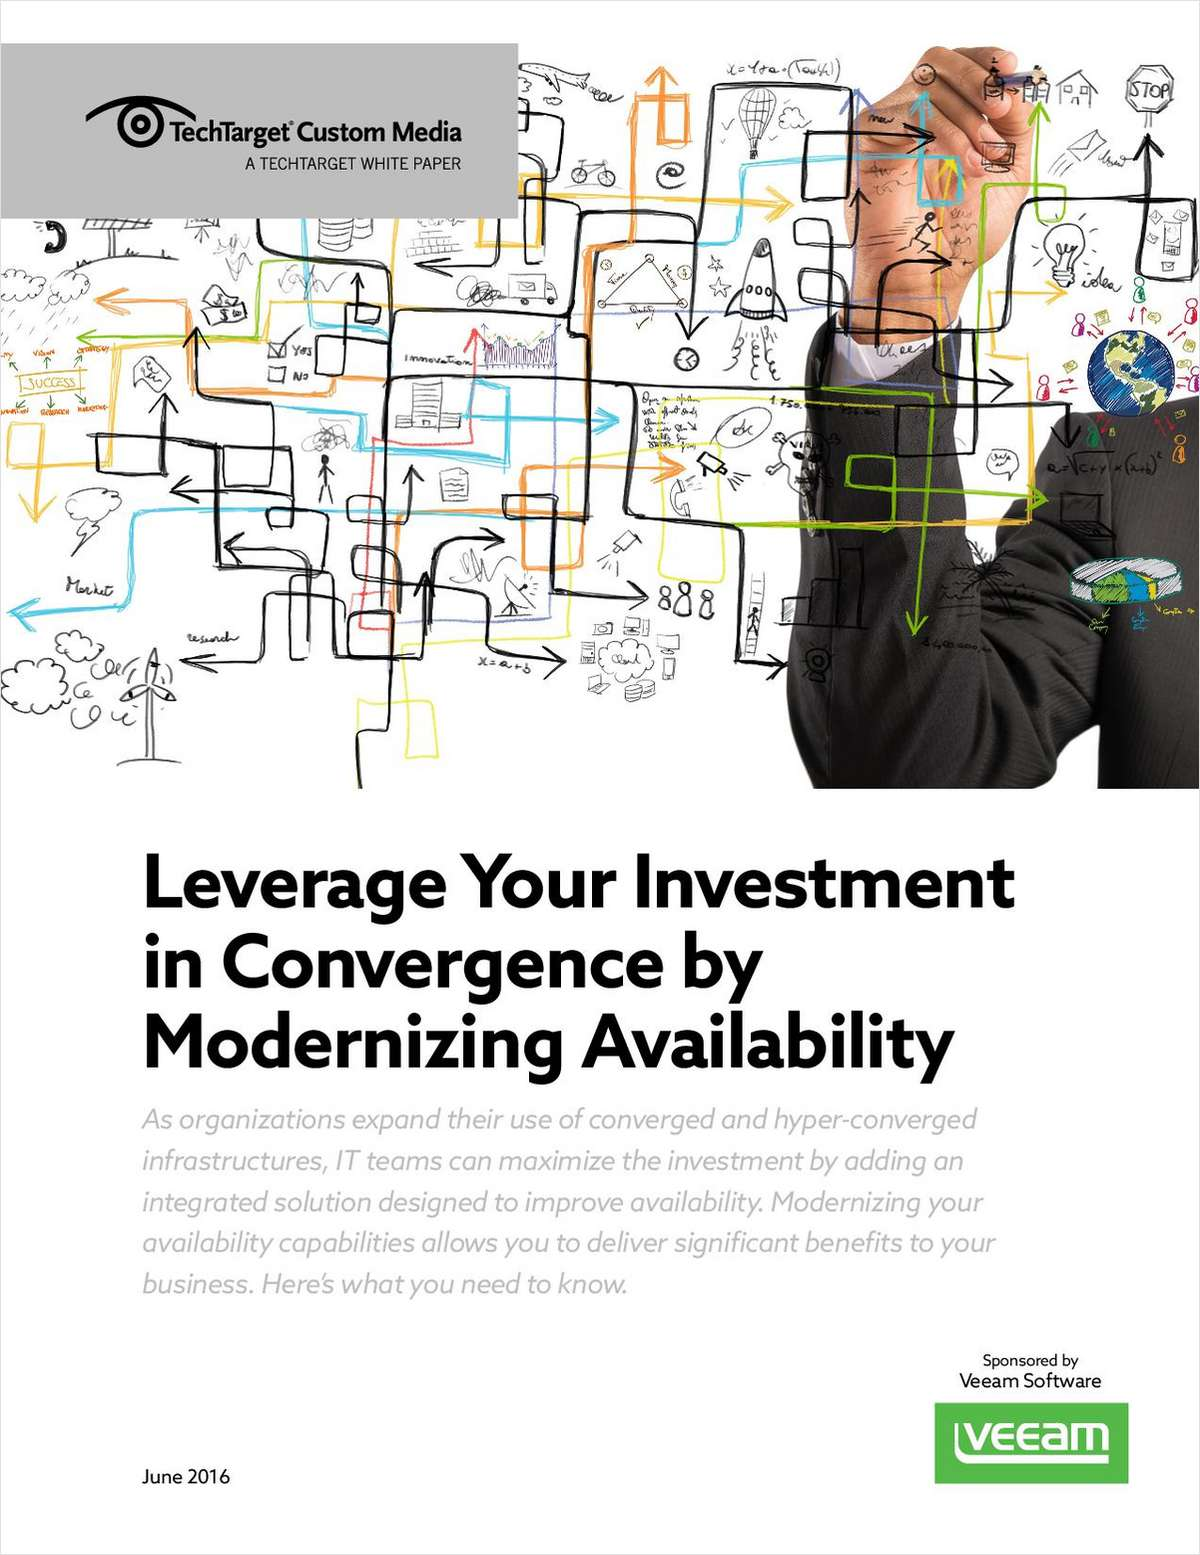 Leverage Your Investment in Convergence by Modernizing Availability